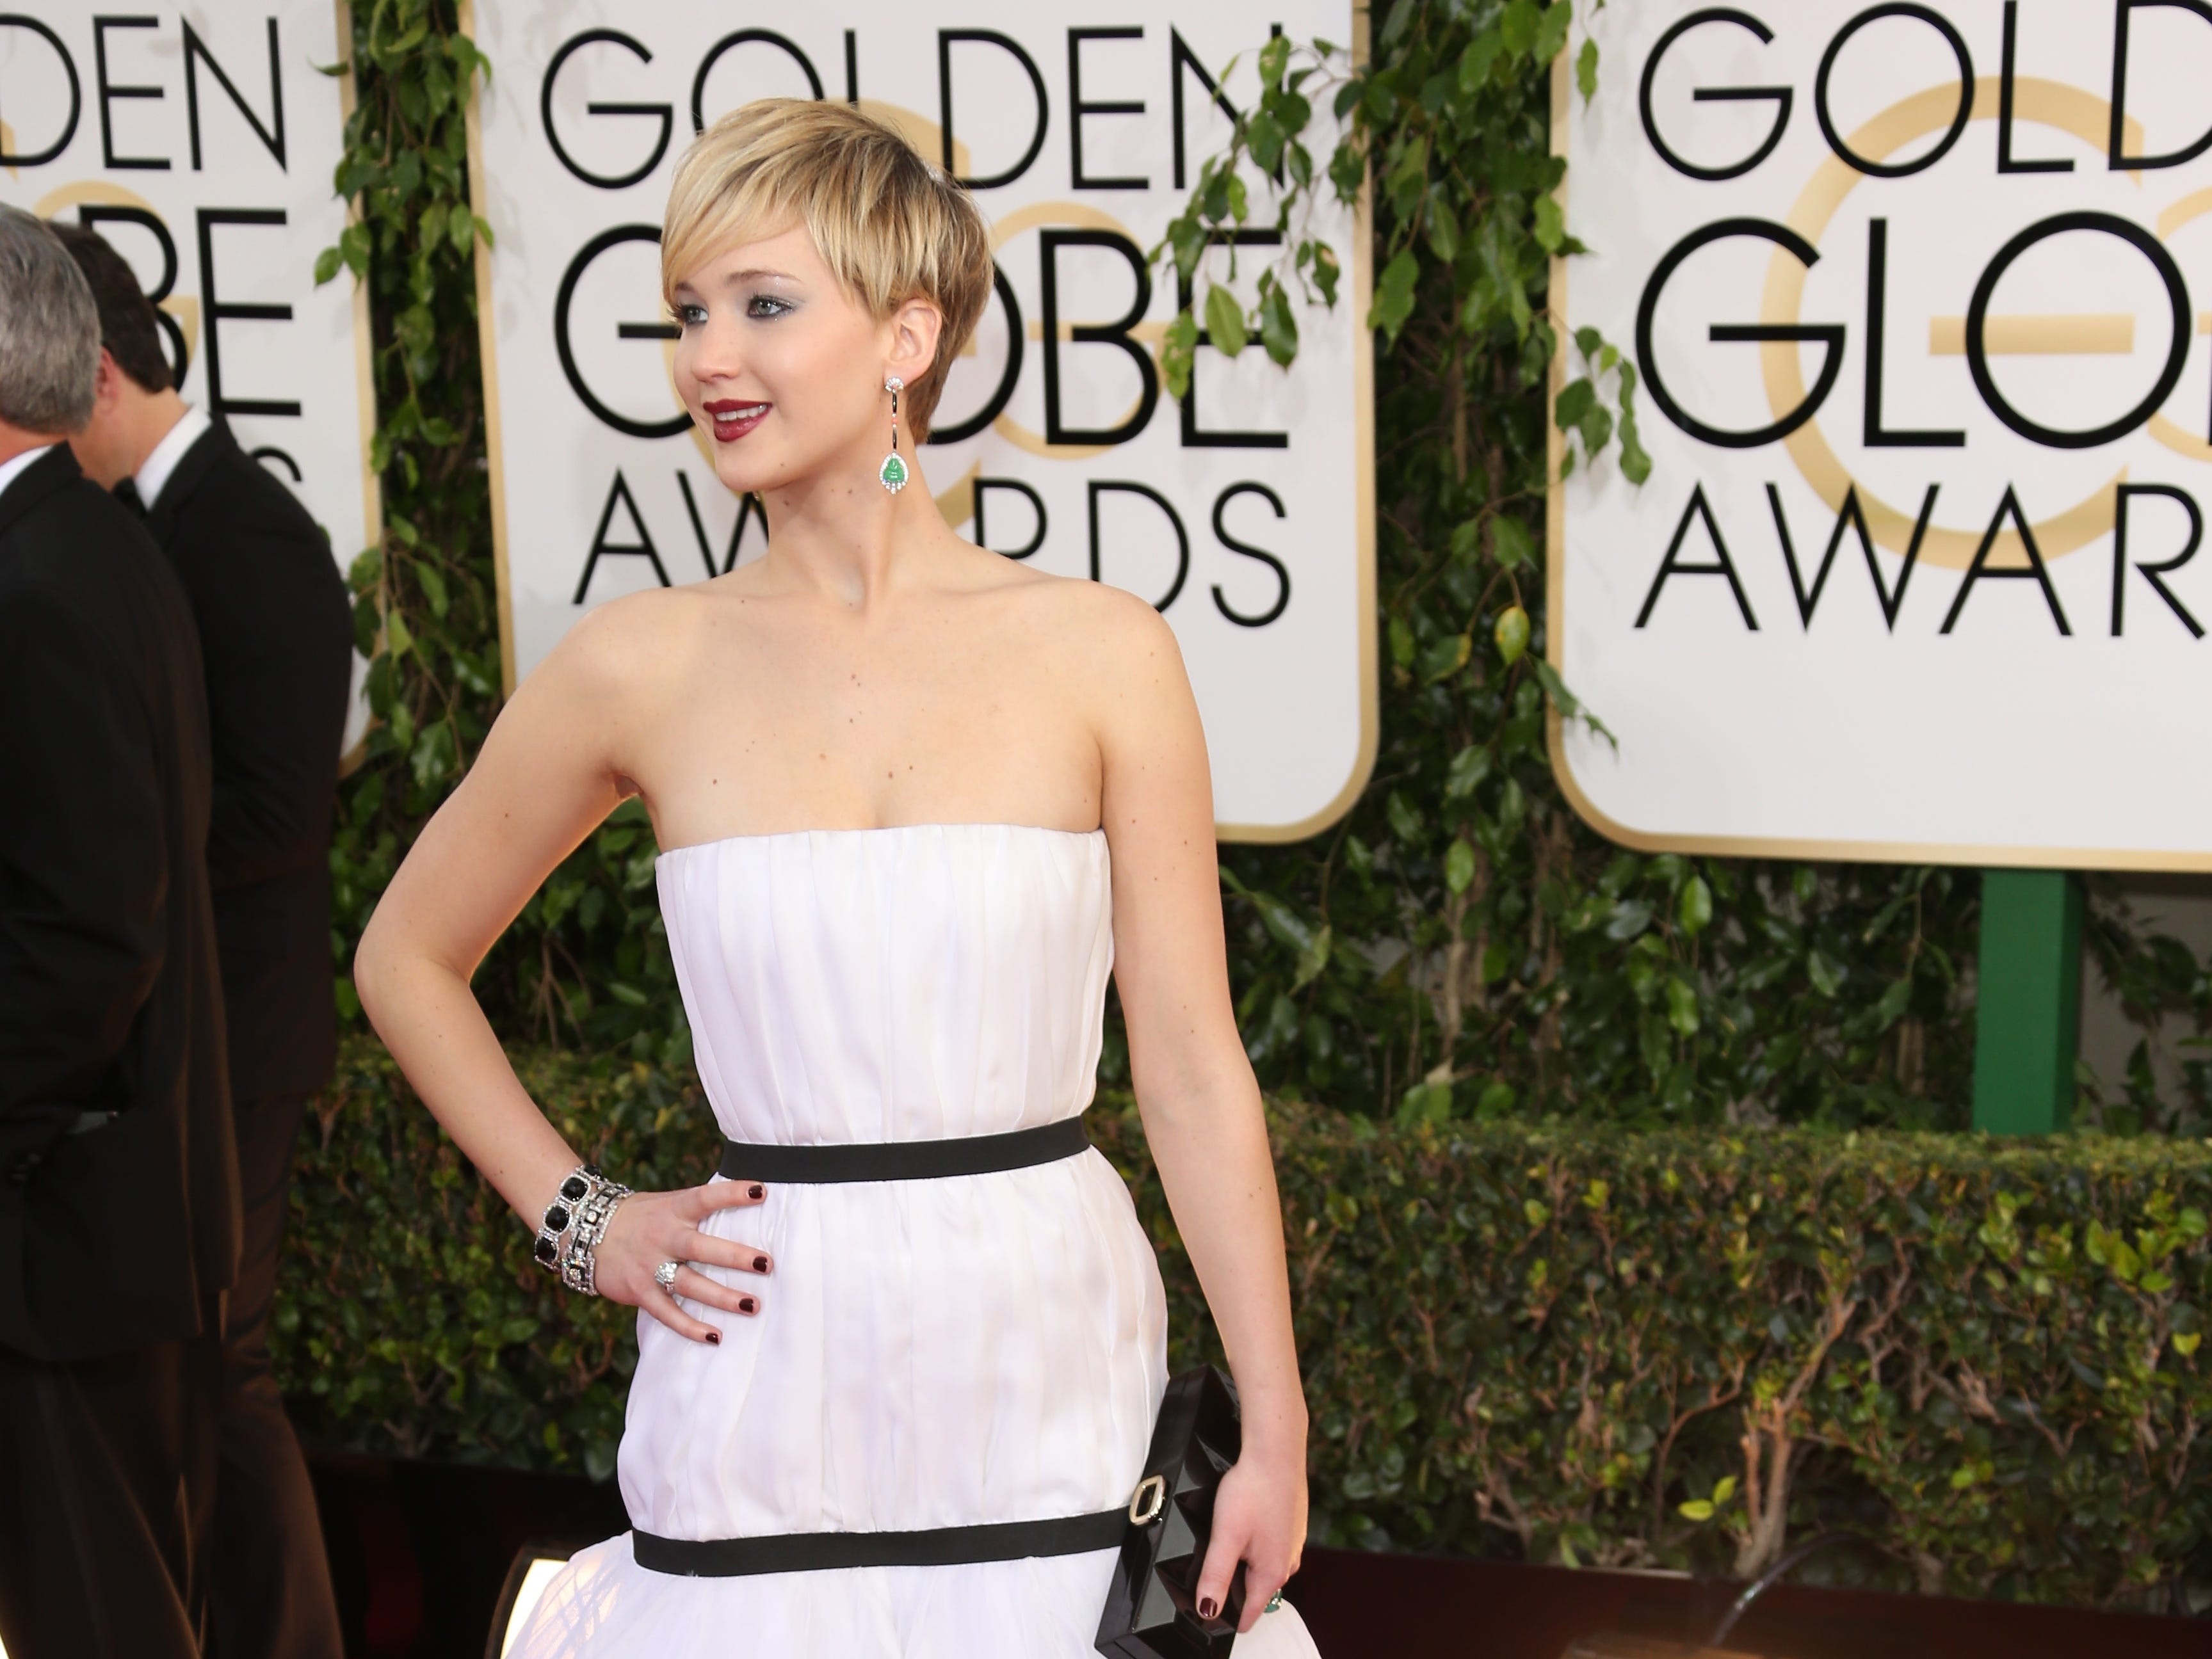 1/12/14 5:27:00 PM -- Beverly Hills, CA, U.S.A  --  Jennifer Lawrence arrives at the 71st annual Golden Globe Awards in Beverly Hills, CA --    Photo by Dan MacMedan, USA TODAY contract photographer  ORG XMIT:  DM 130549 2014 GOLDEN GLOB 1/11/2014 (Via OlyDrop)